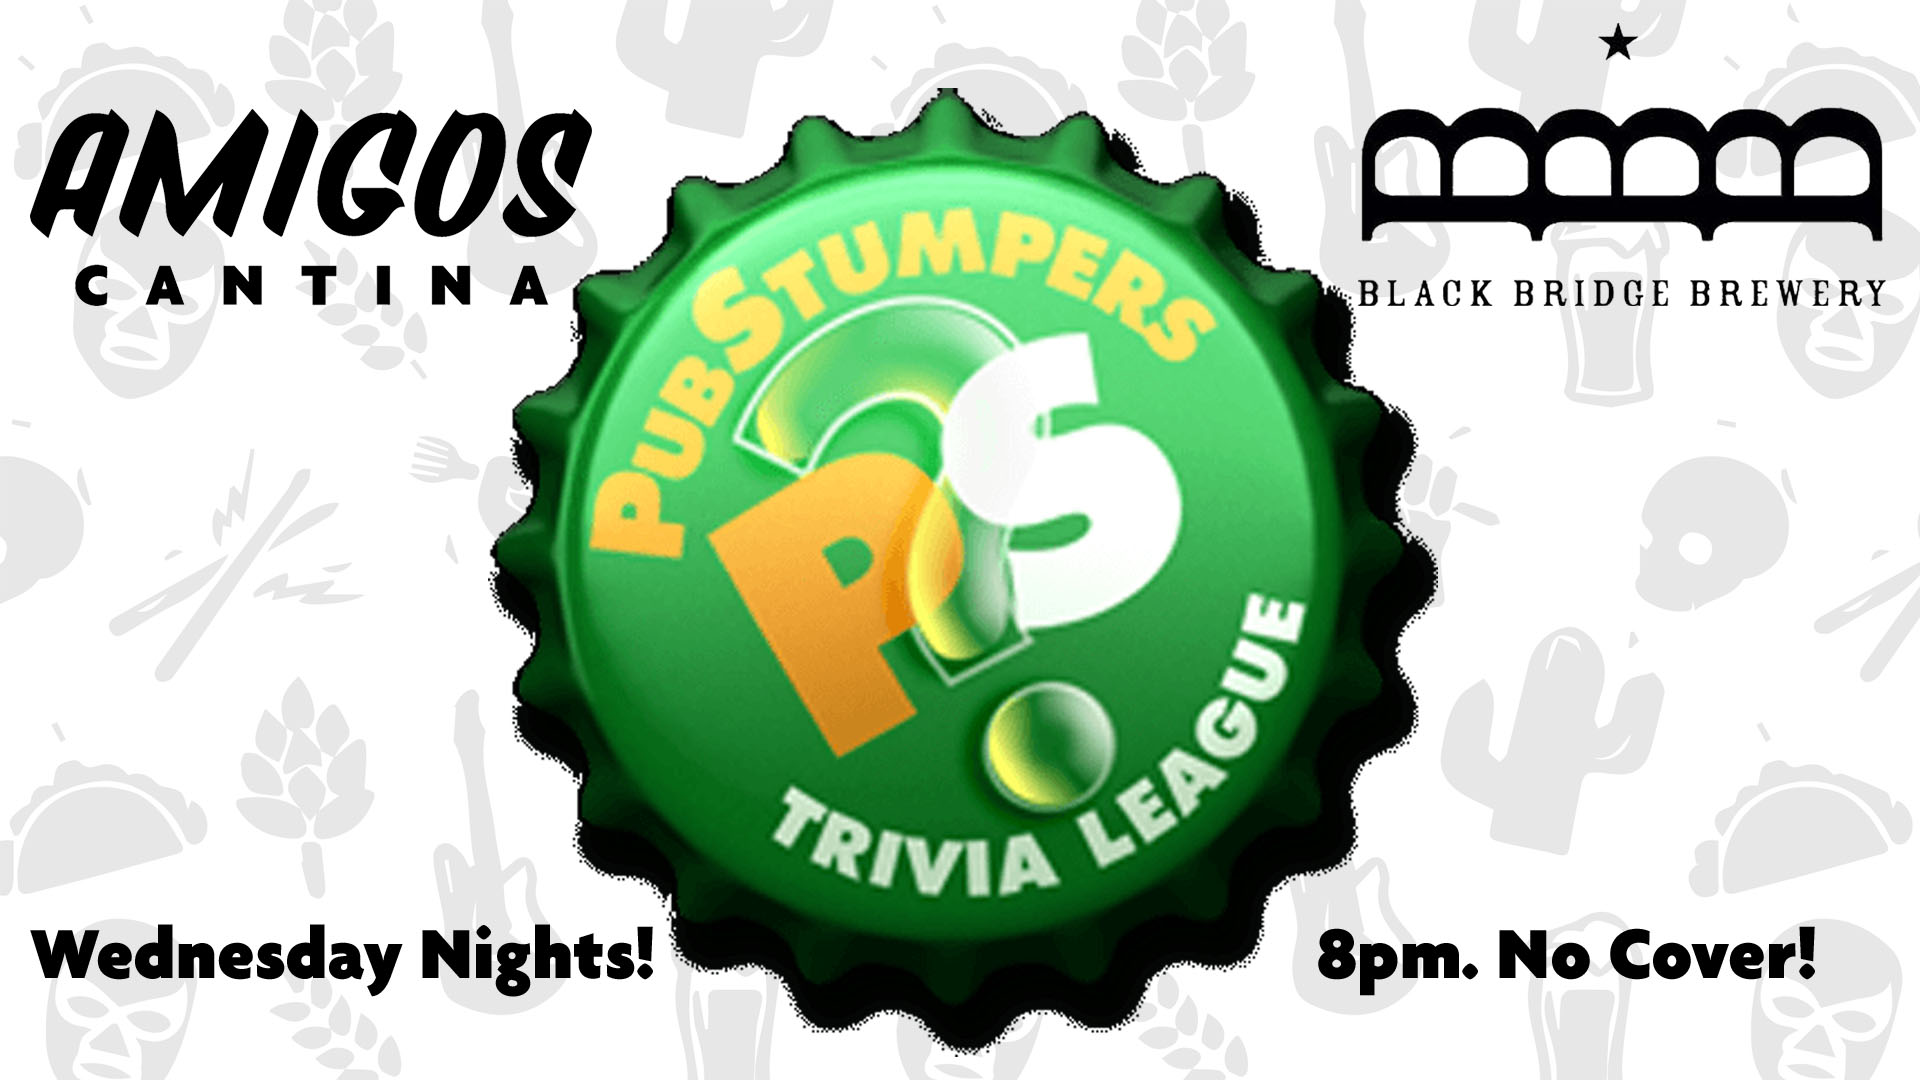 Pub Stumpers Trivia Night at Amigos!